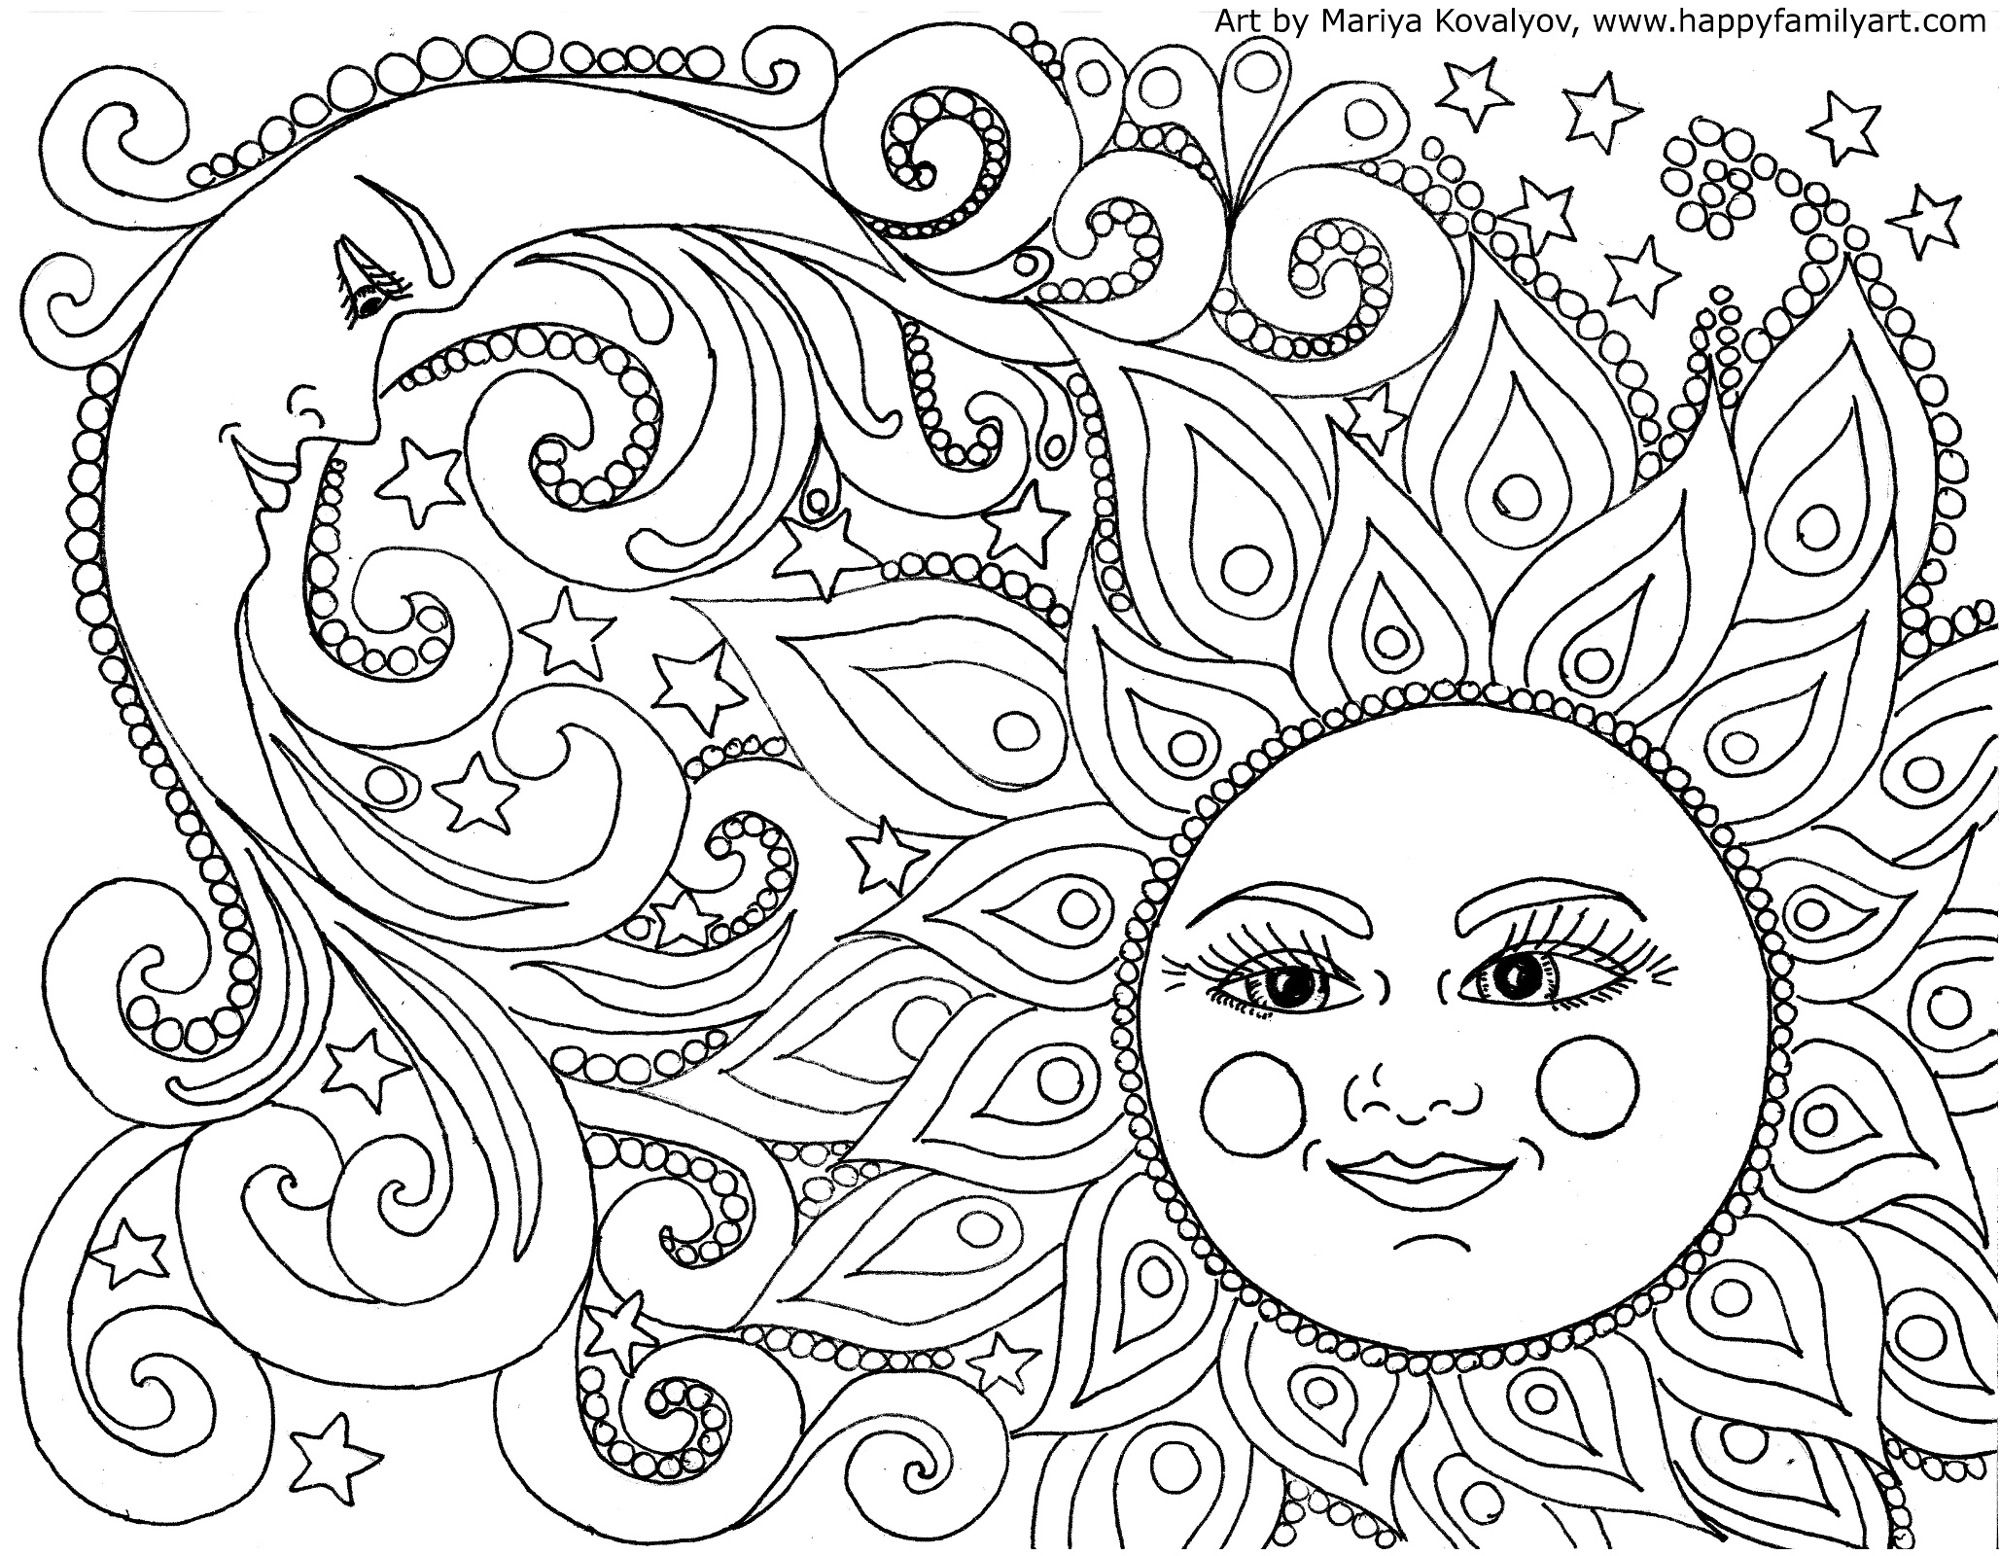 2000x1556 Original And Fun Coloring Pages Originals, Adult Coloring And Peace